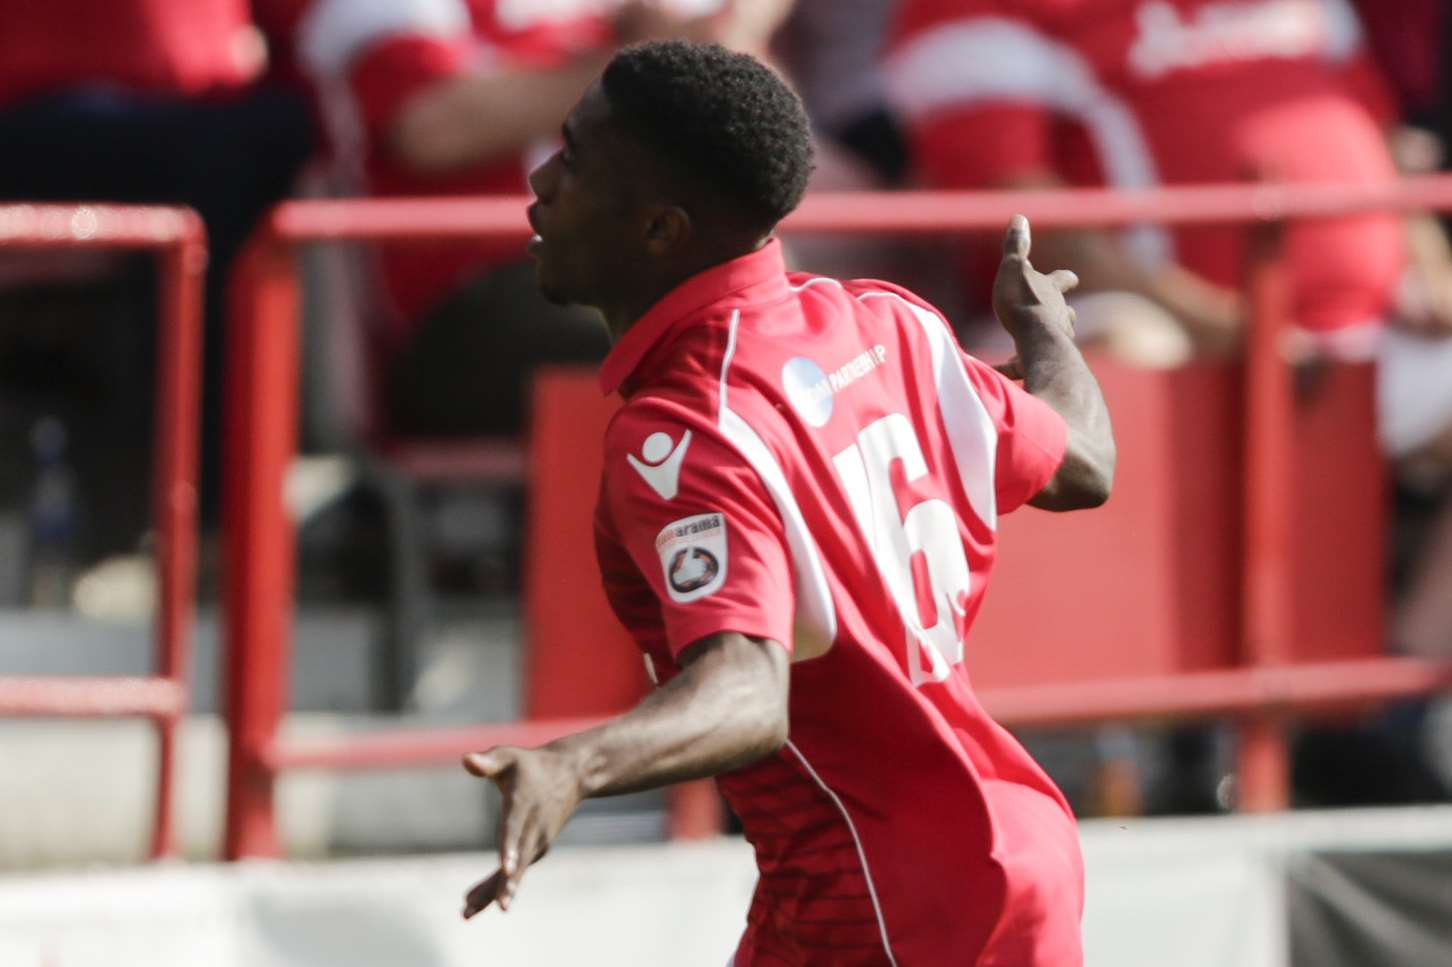 Darren McQueen has agreed a permanent deal with Ebbsfleet Picture: Martin Apps